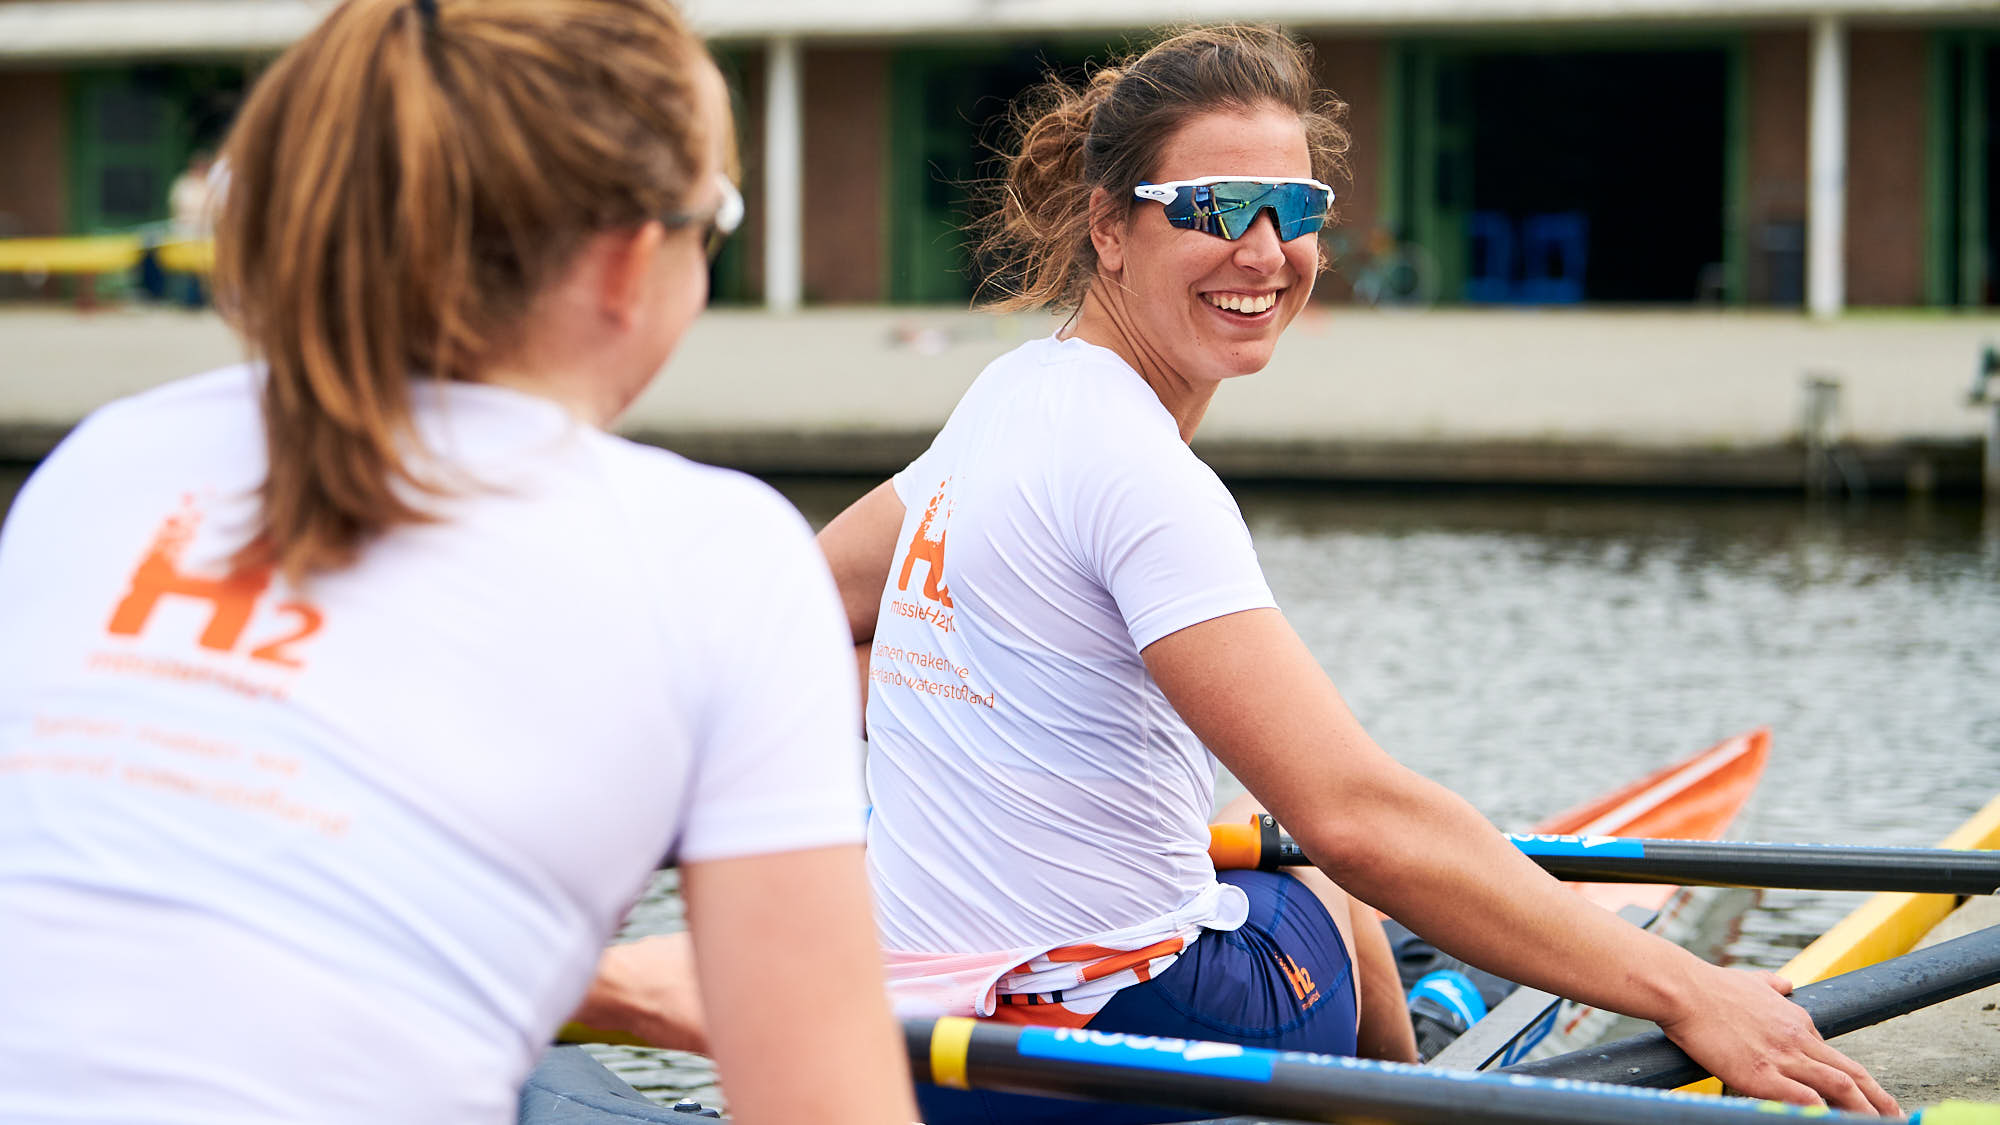 Ilse Paulis and Marieke Keijser lifestyle shot in rowing boat